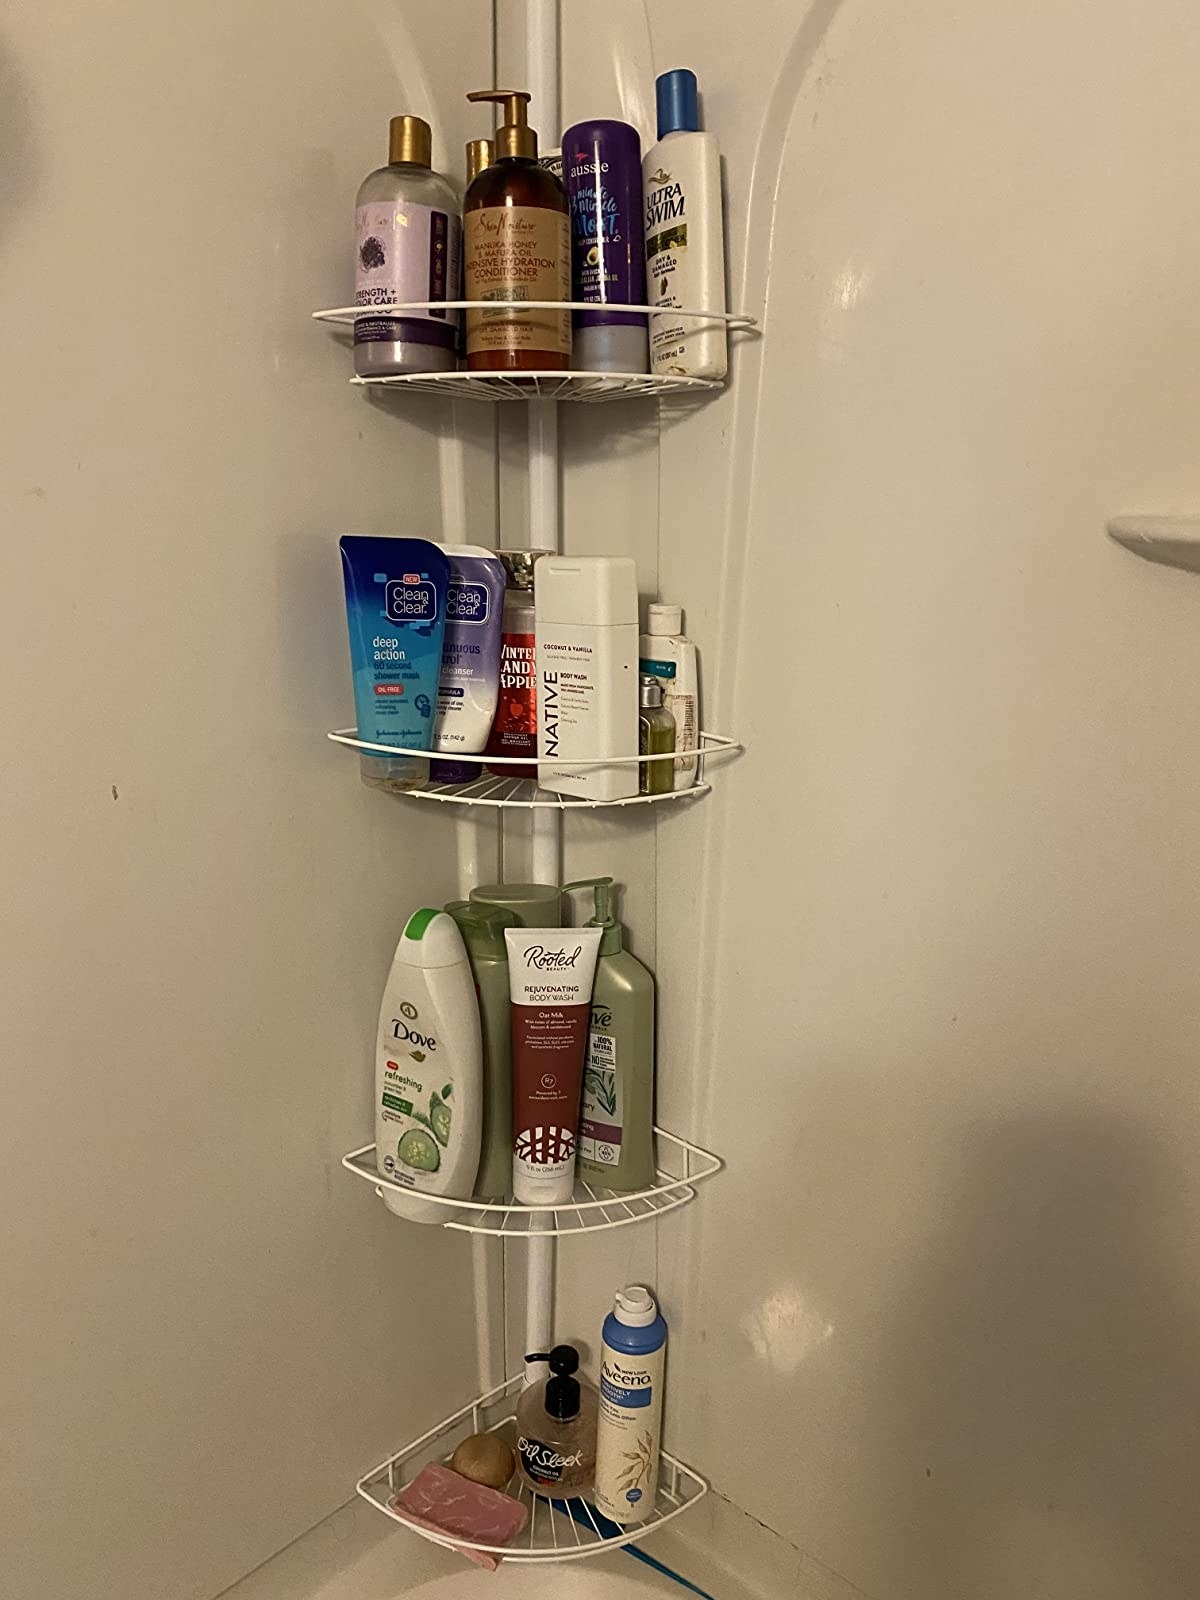 A reviewer photo of the four-tier shower caddy filled with shampoo bottles and other bath products